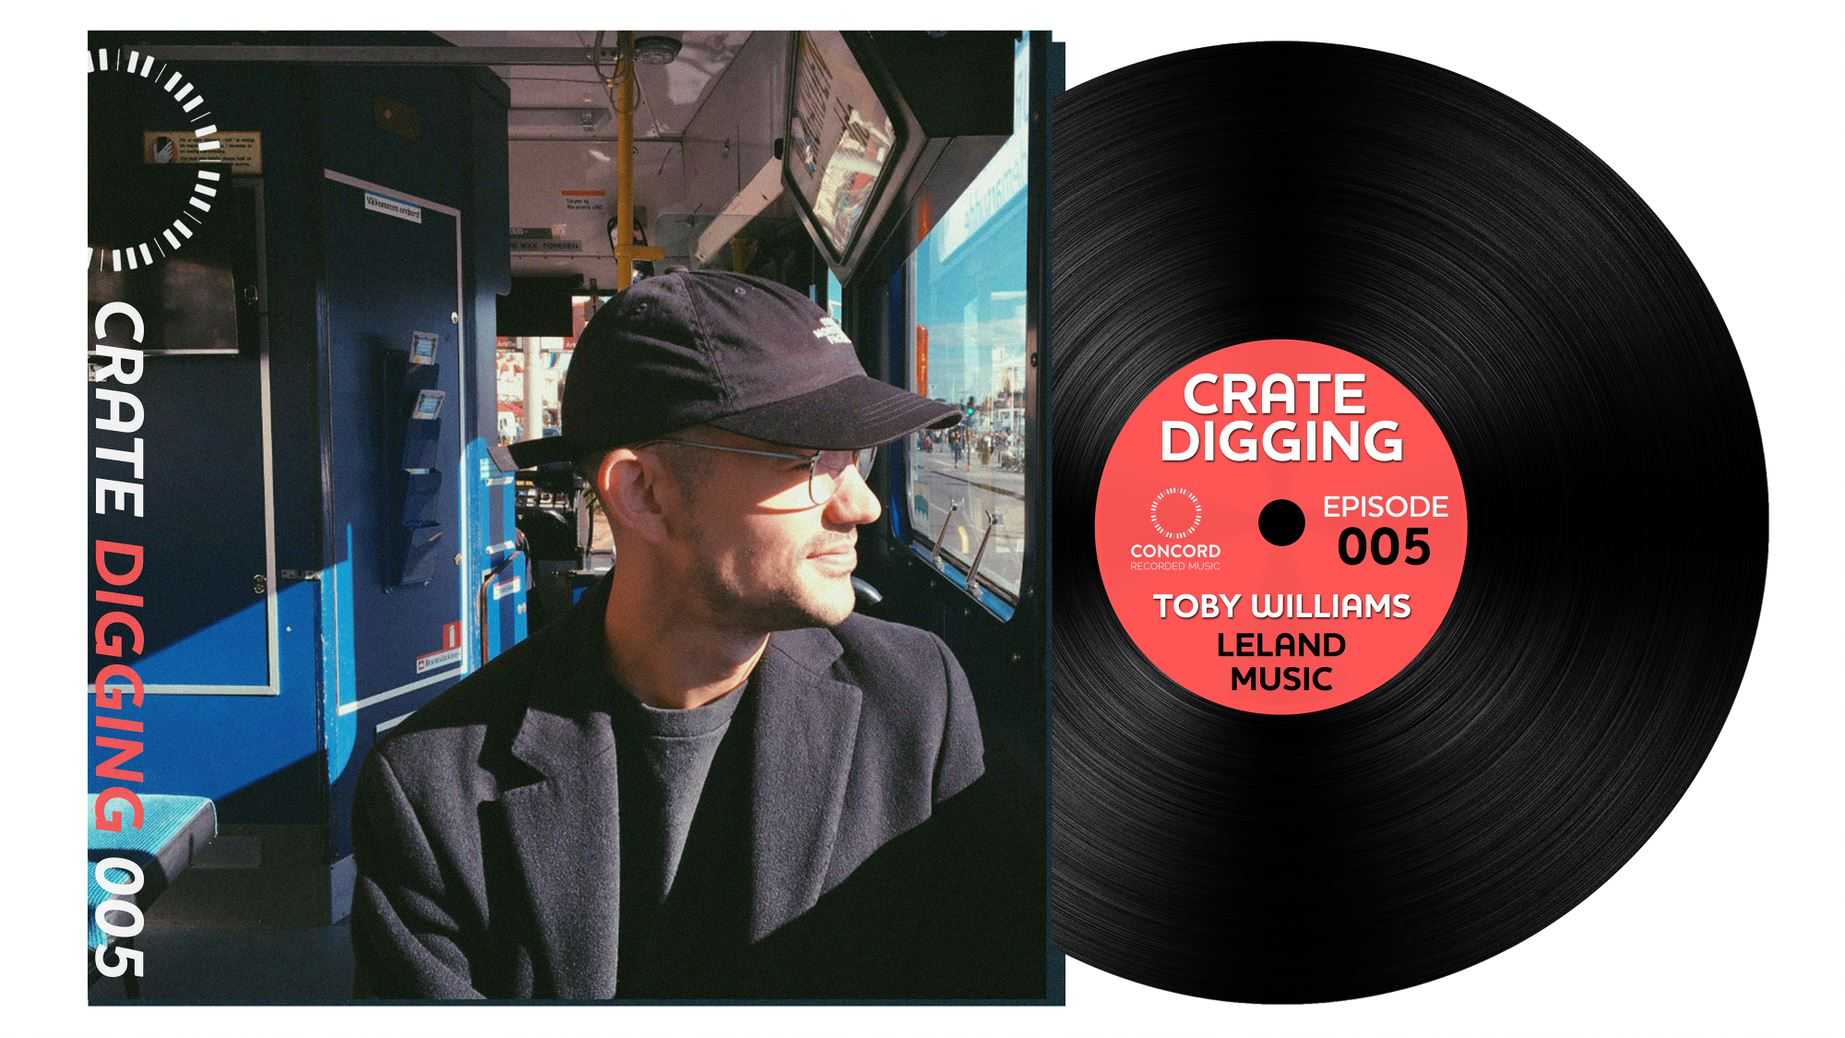 Crate Digging: Toby Williams, Leland Music